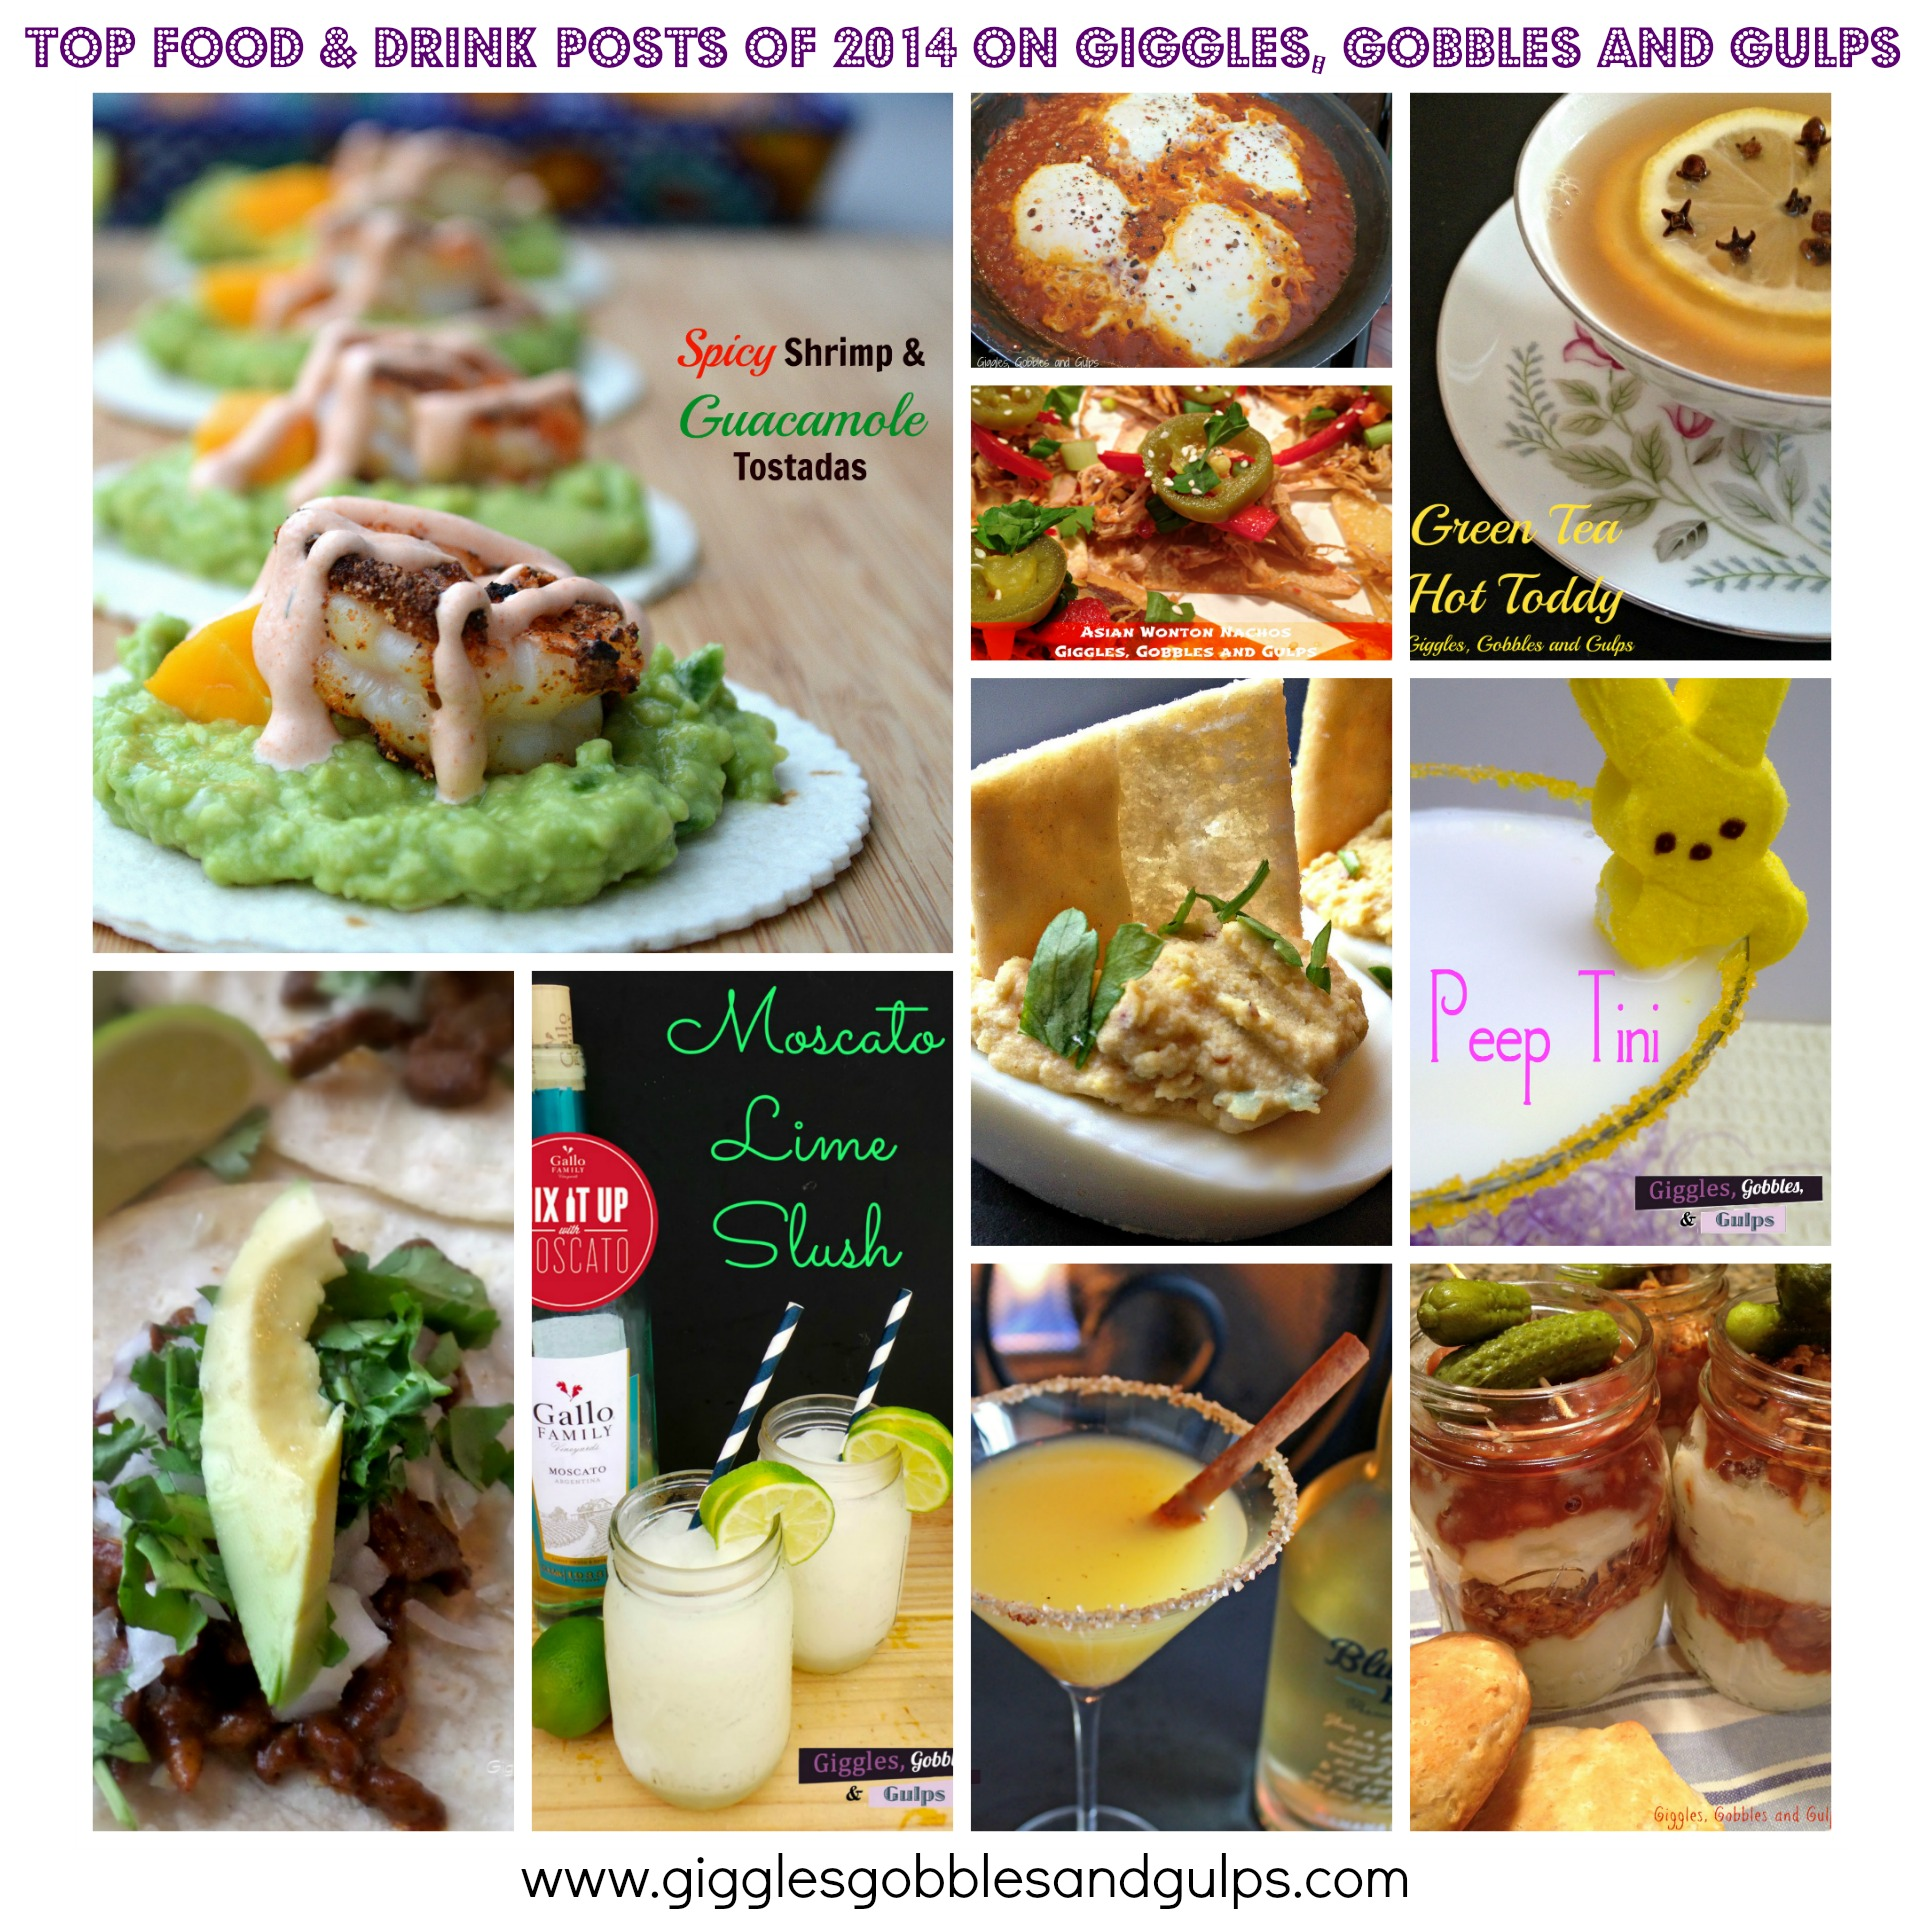 2014 top food and drink posts